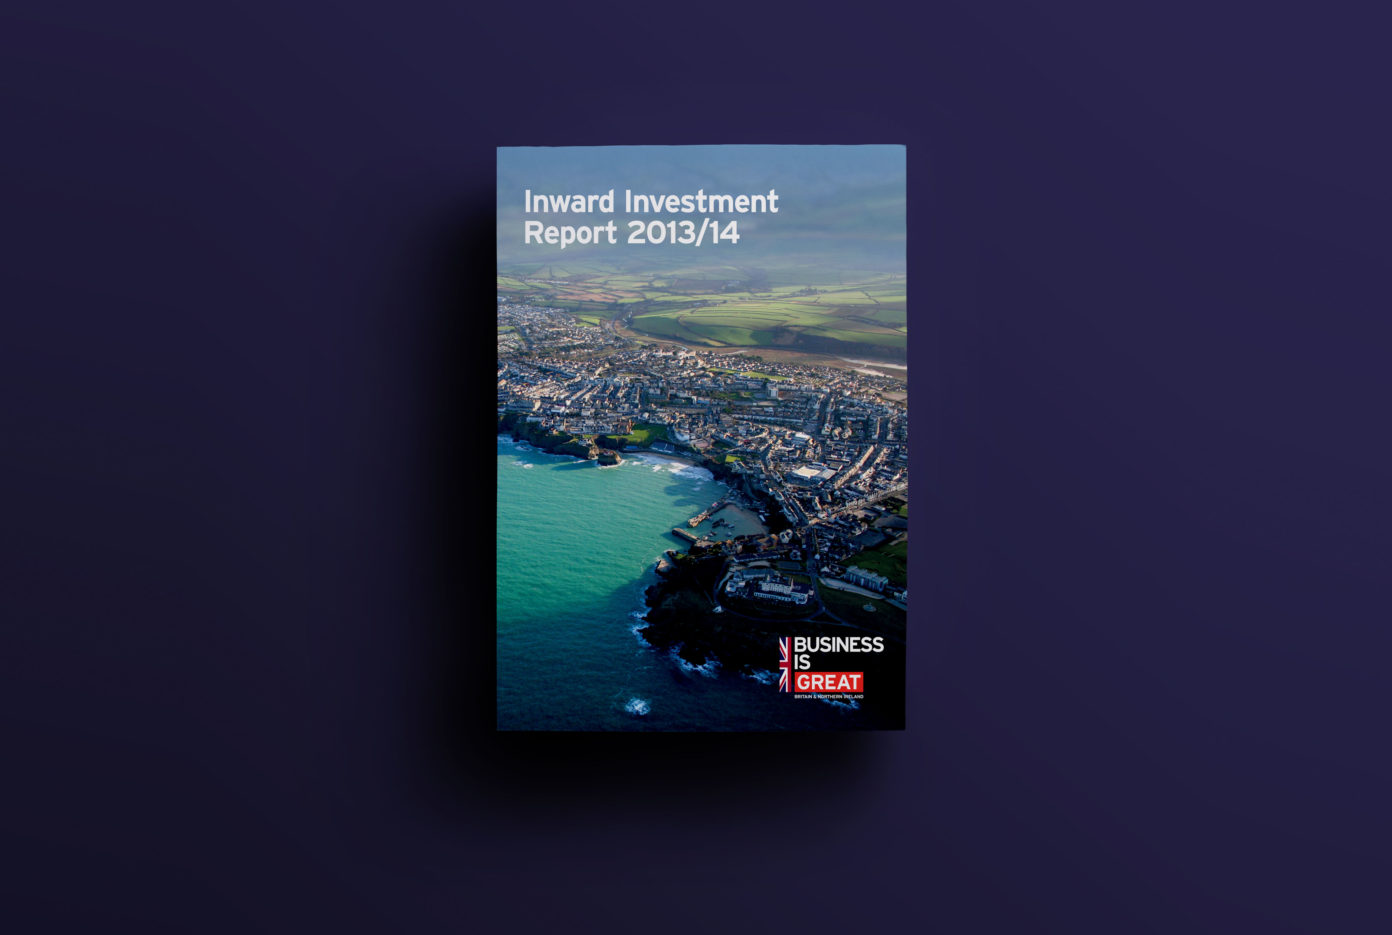 UK Trade & Investment Inward Investment report